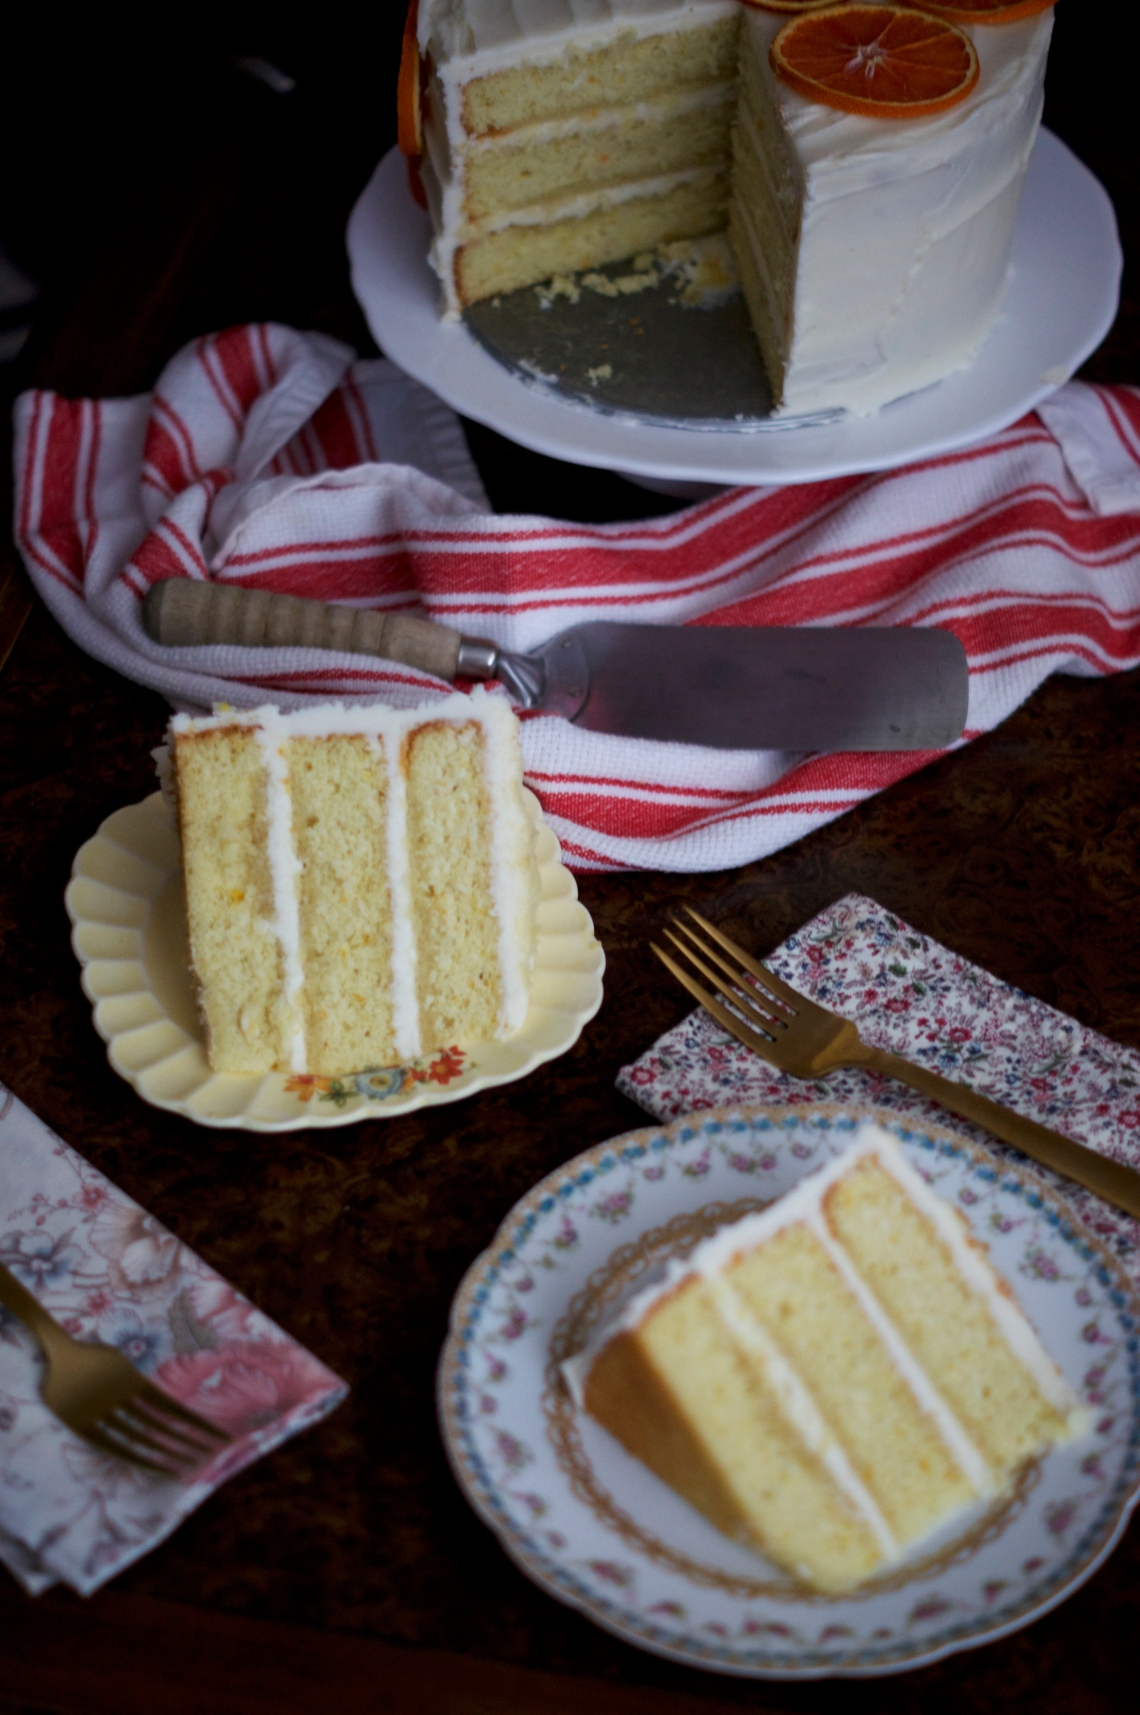 Orange Cream Cake | via Midwest Nice Blog